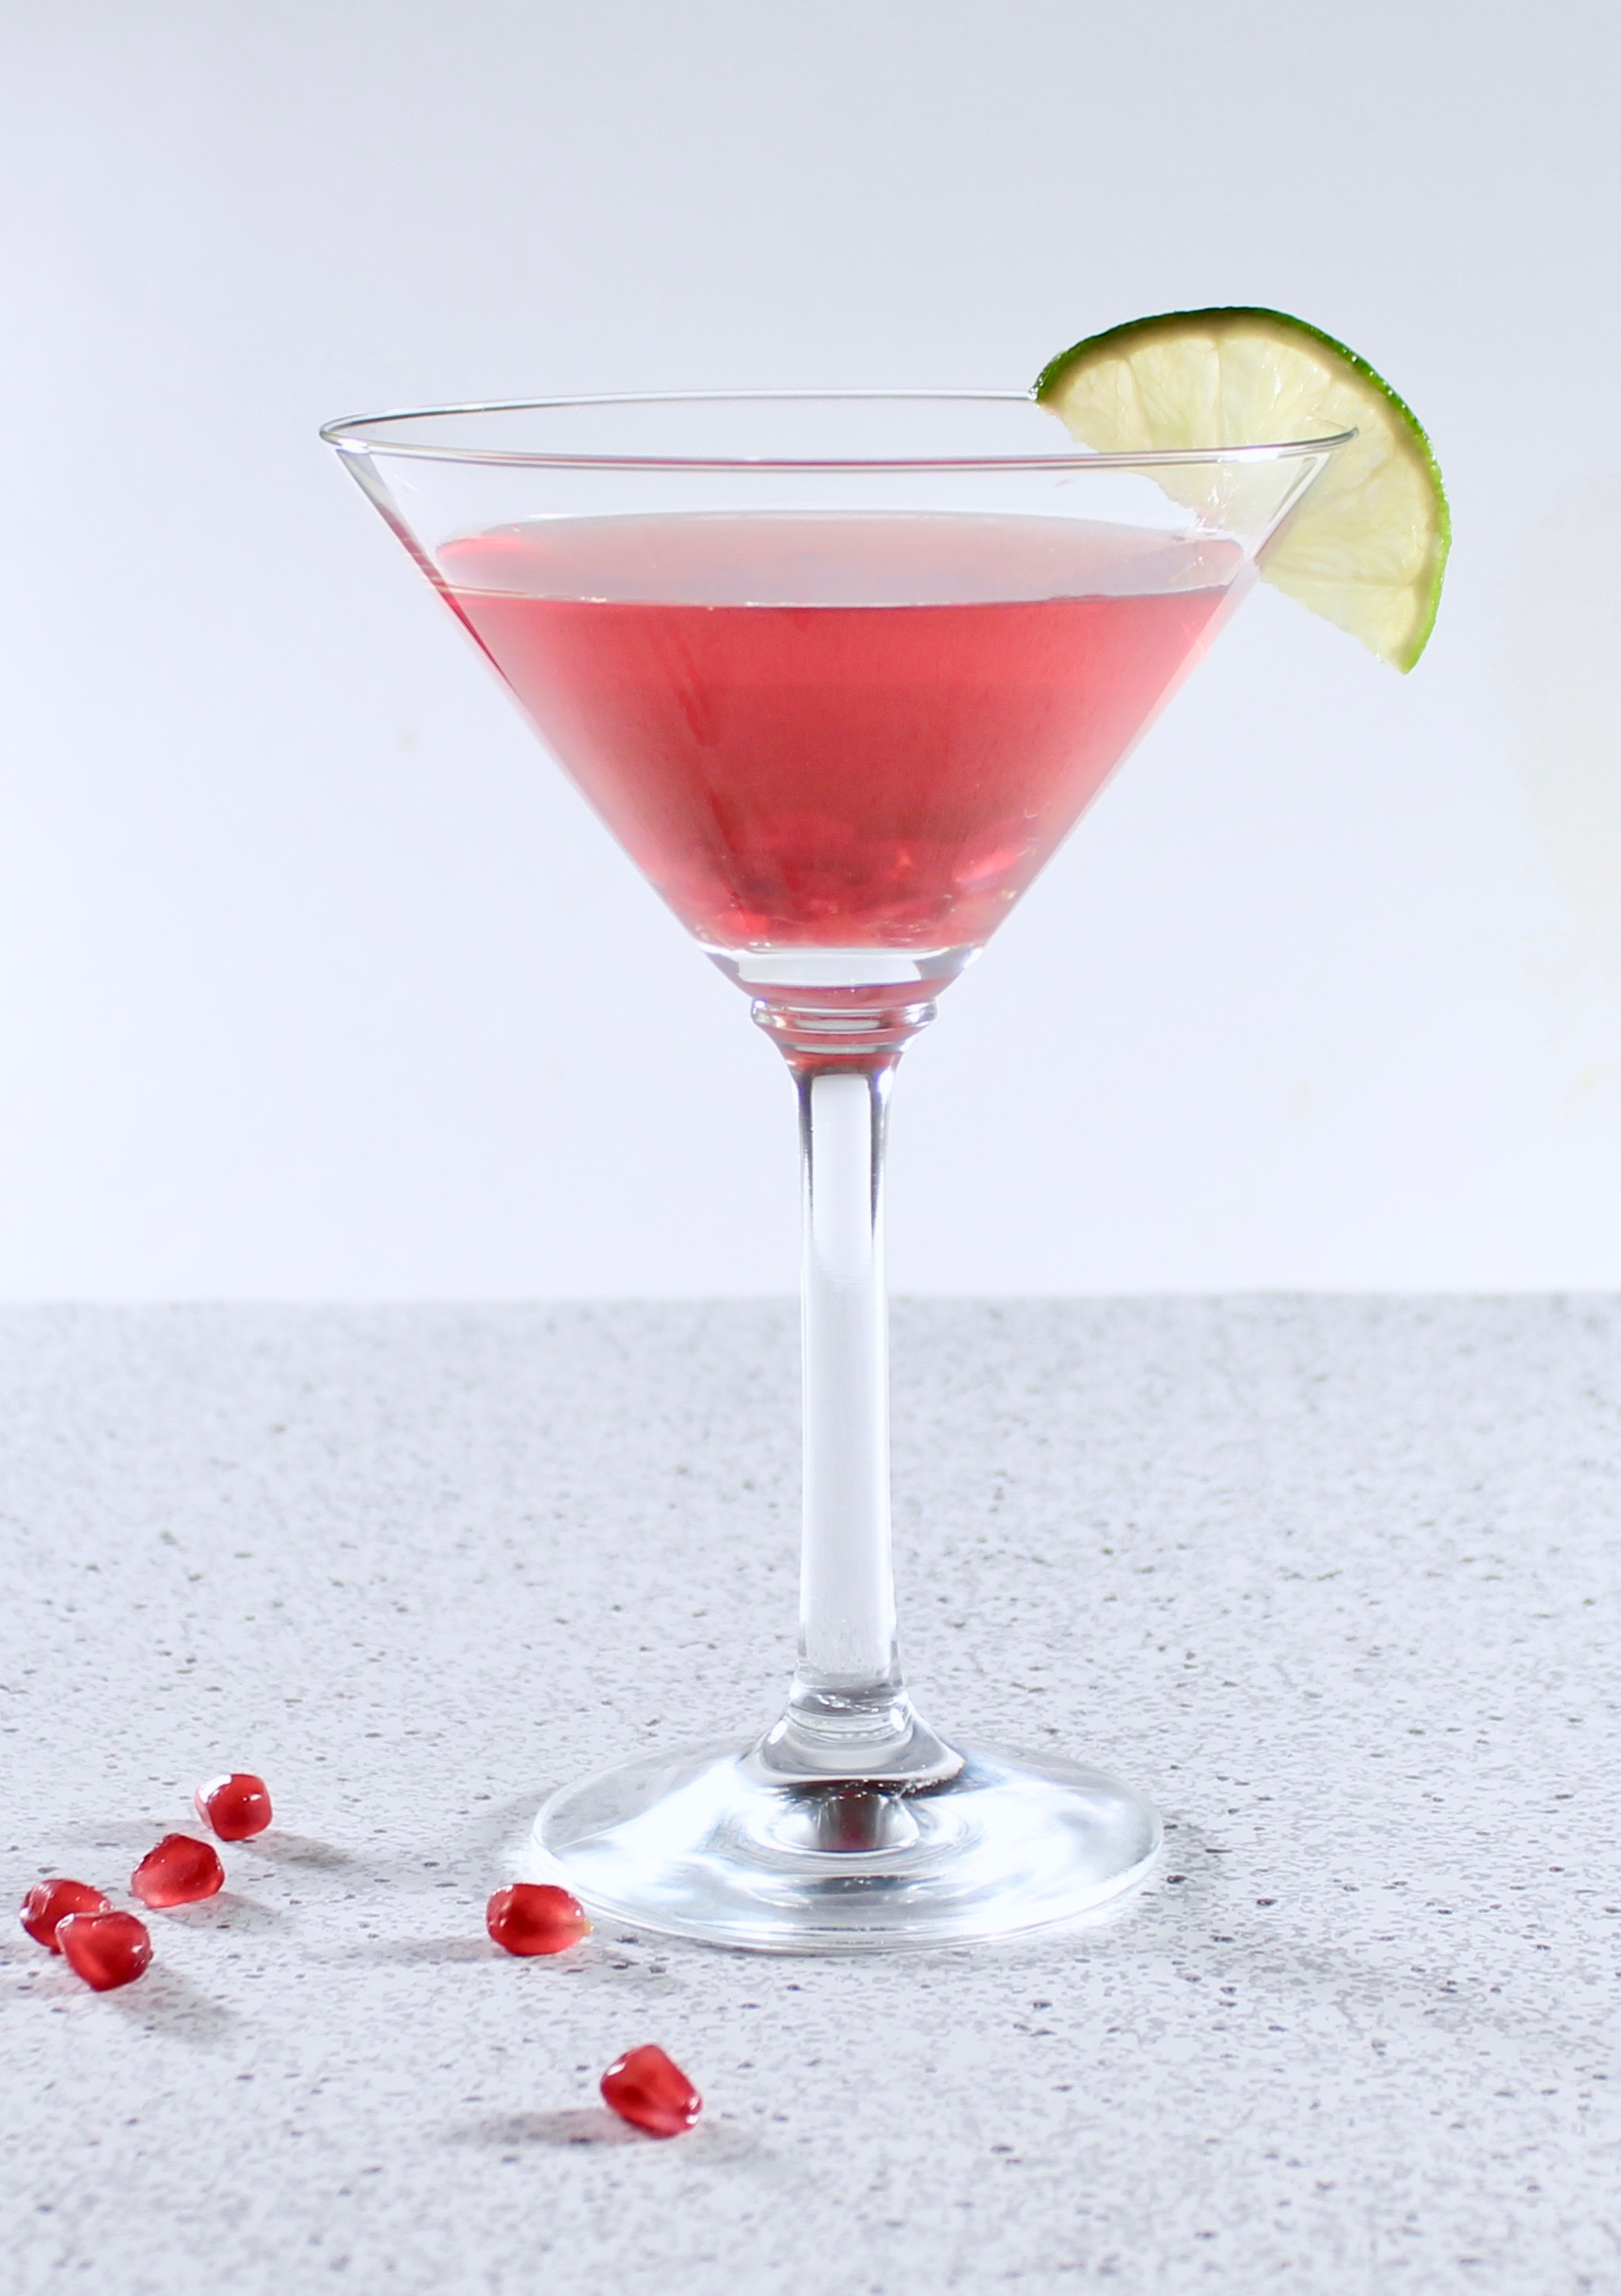 Jasmine Pomegranate Cocktail